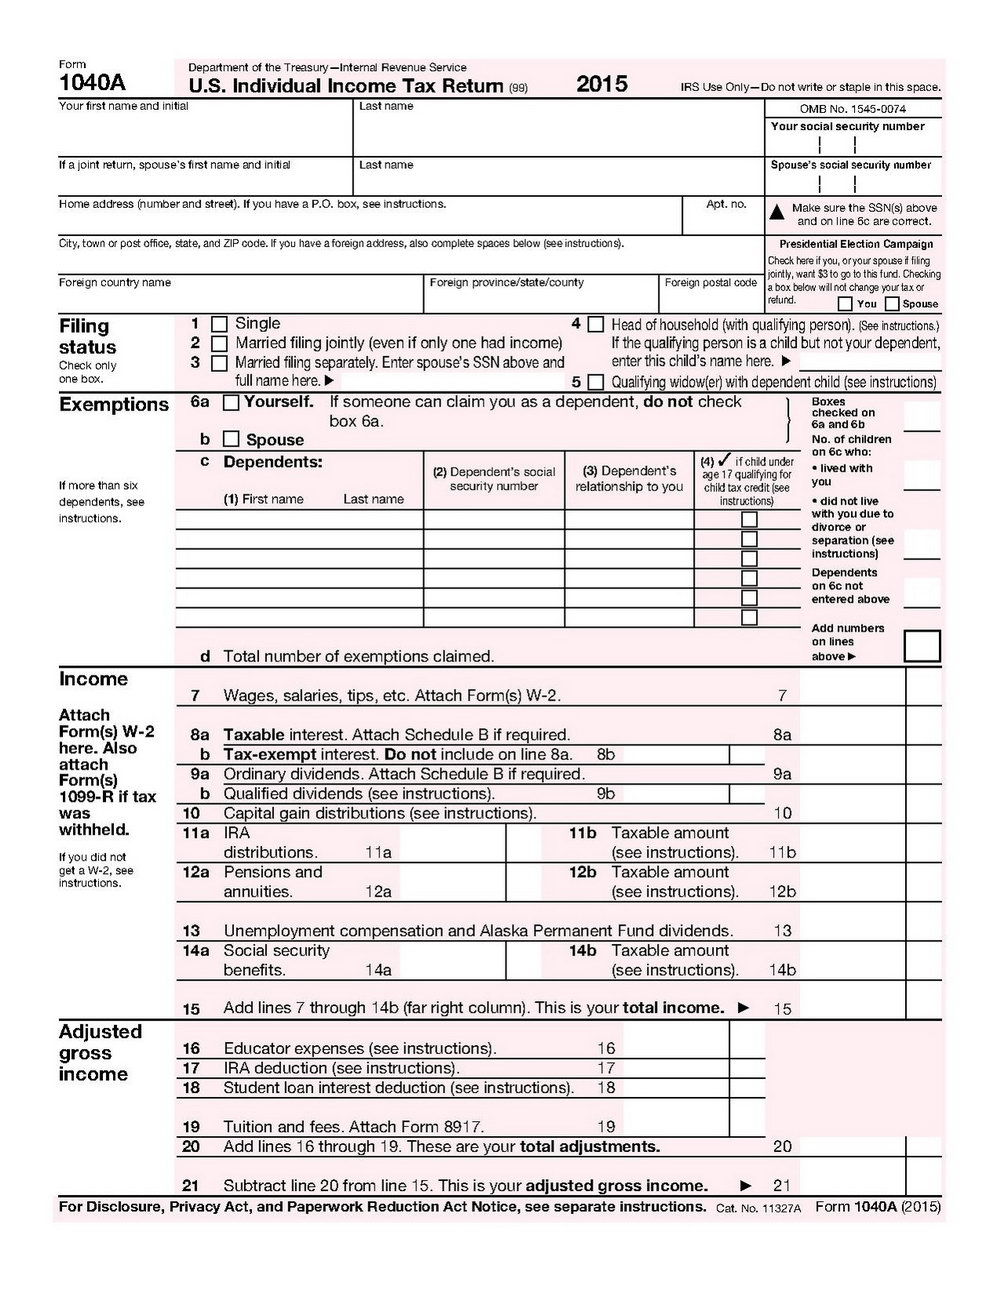 1040 Income Tax Form 2015